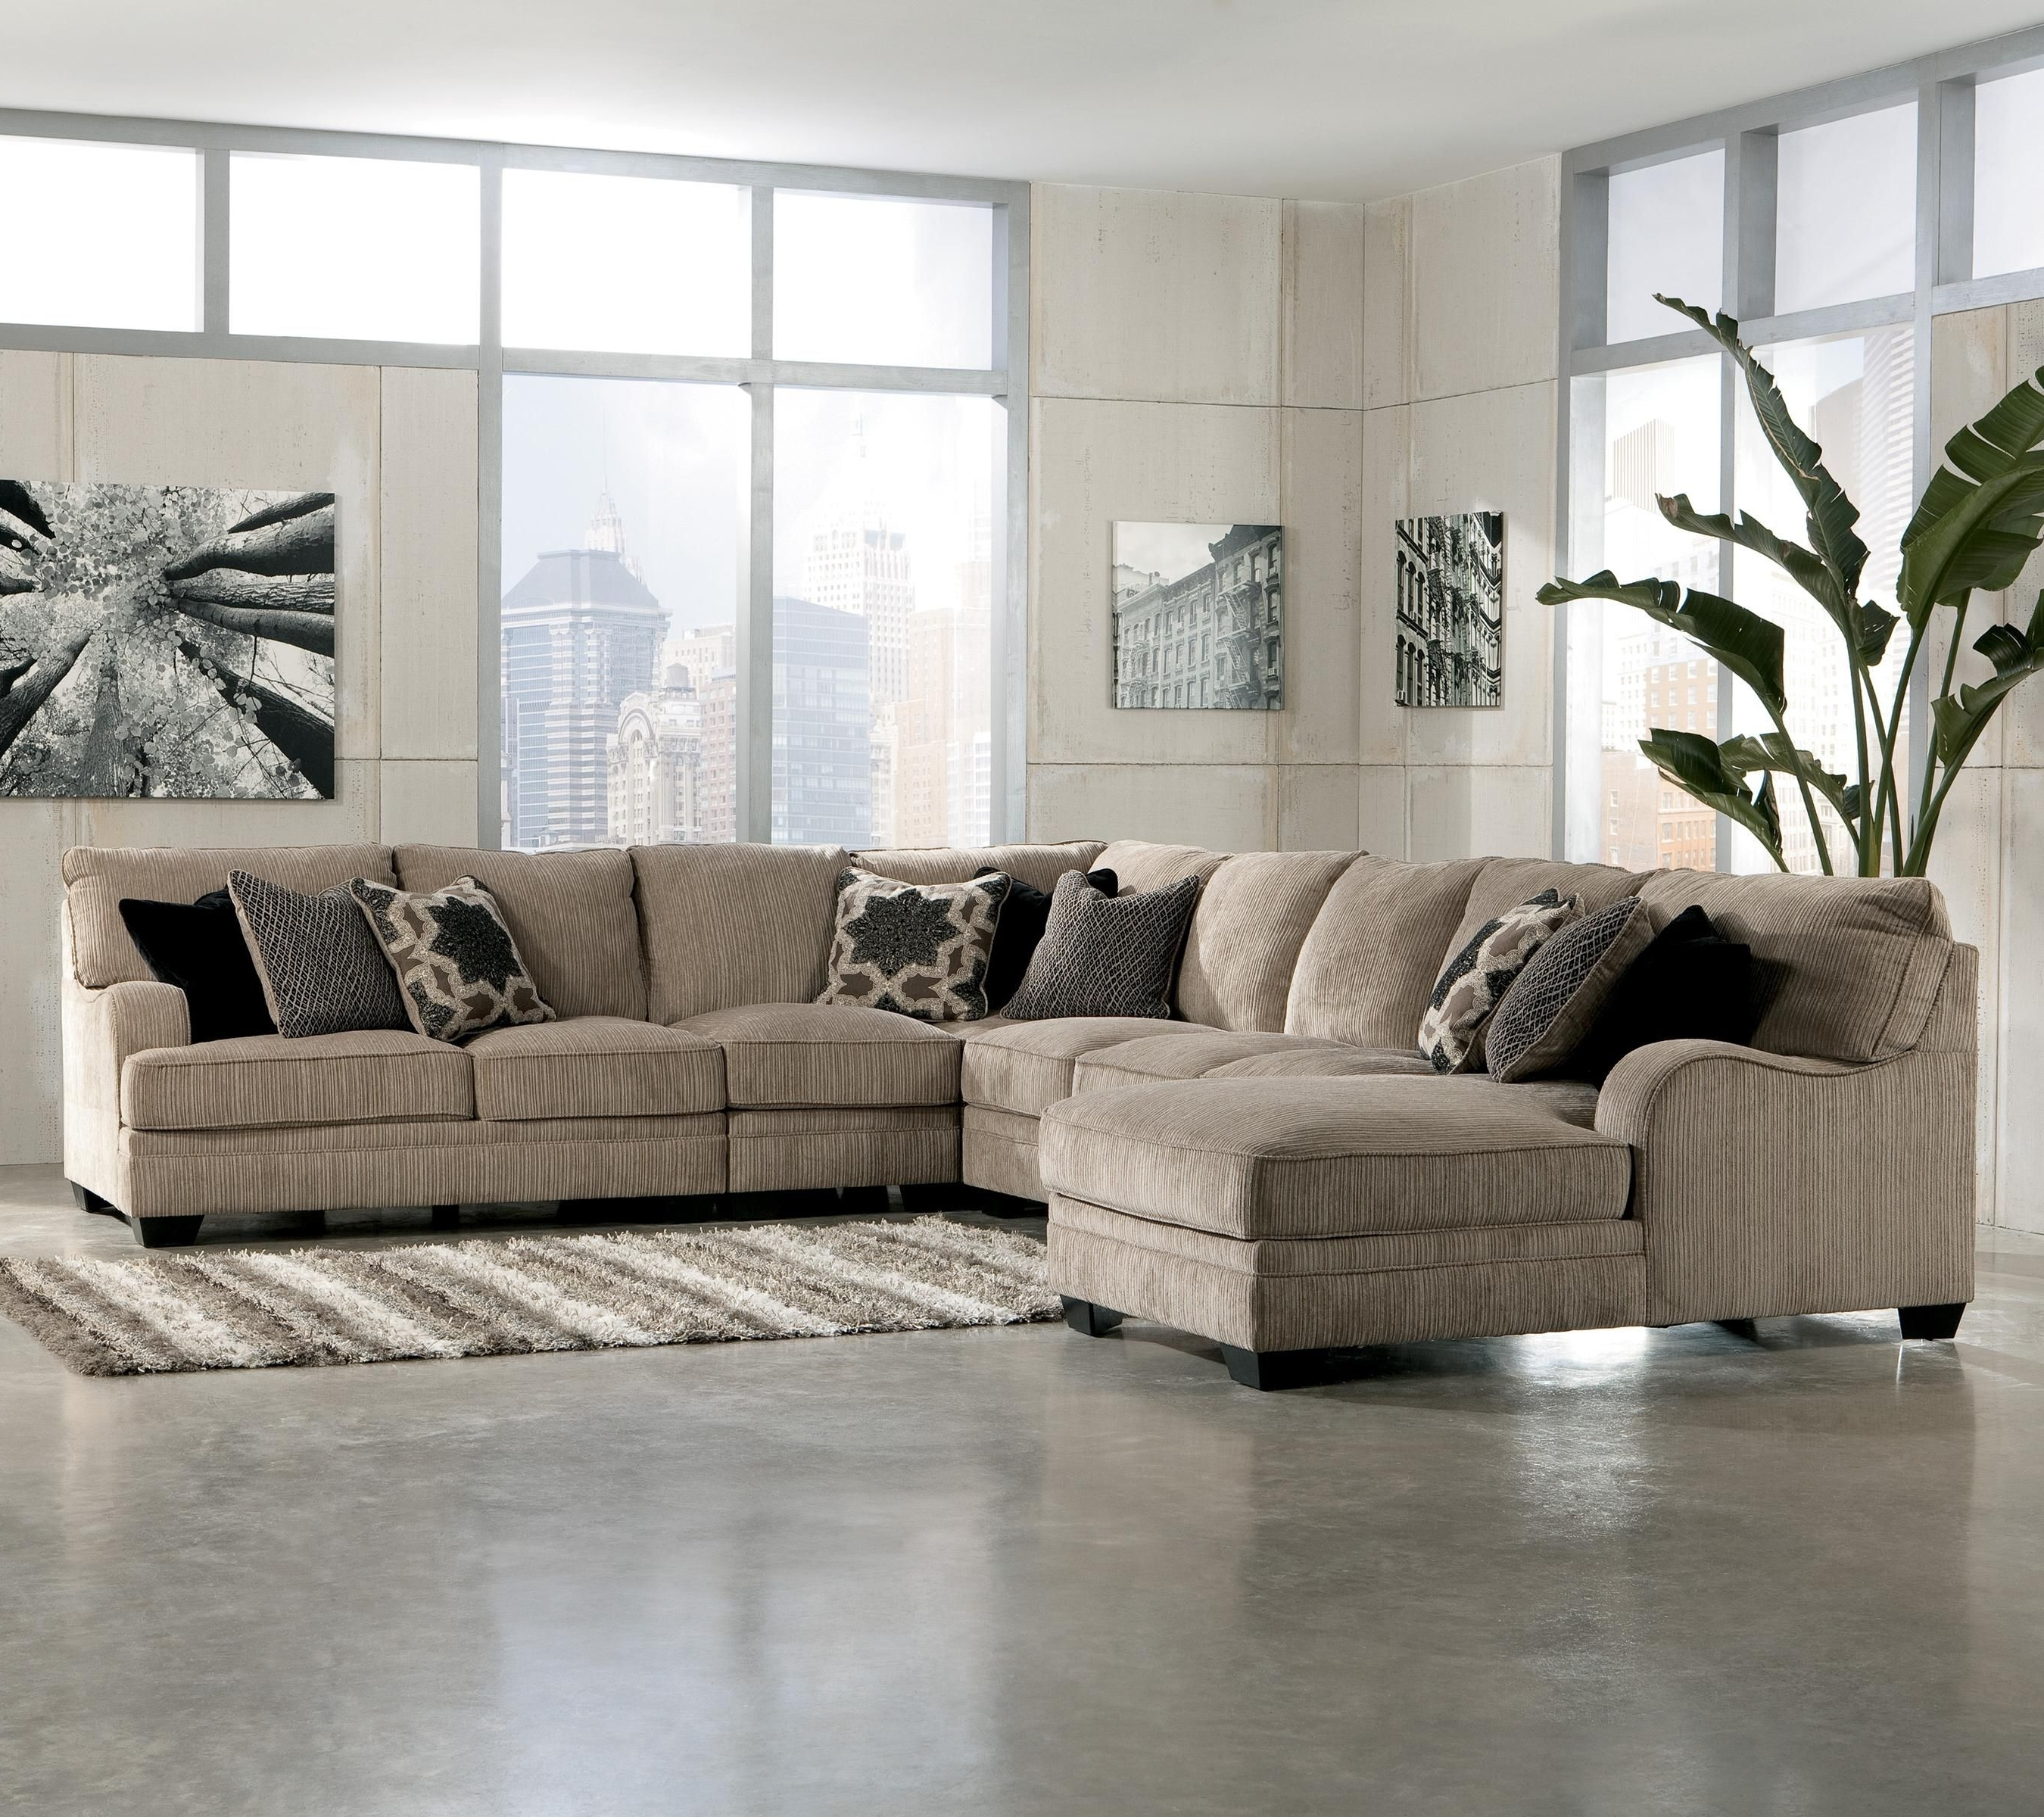 Trendy Sectional Sofas At Ashley Inside Living Room Sectional: Katisha 4 Piece Sectionalashley (View 11 of 15)